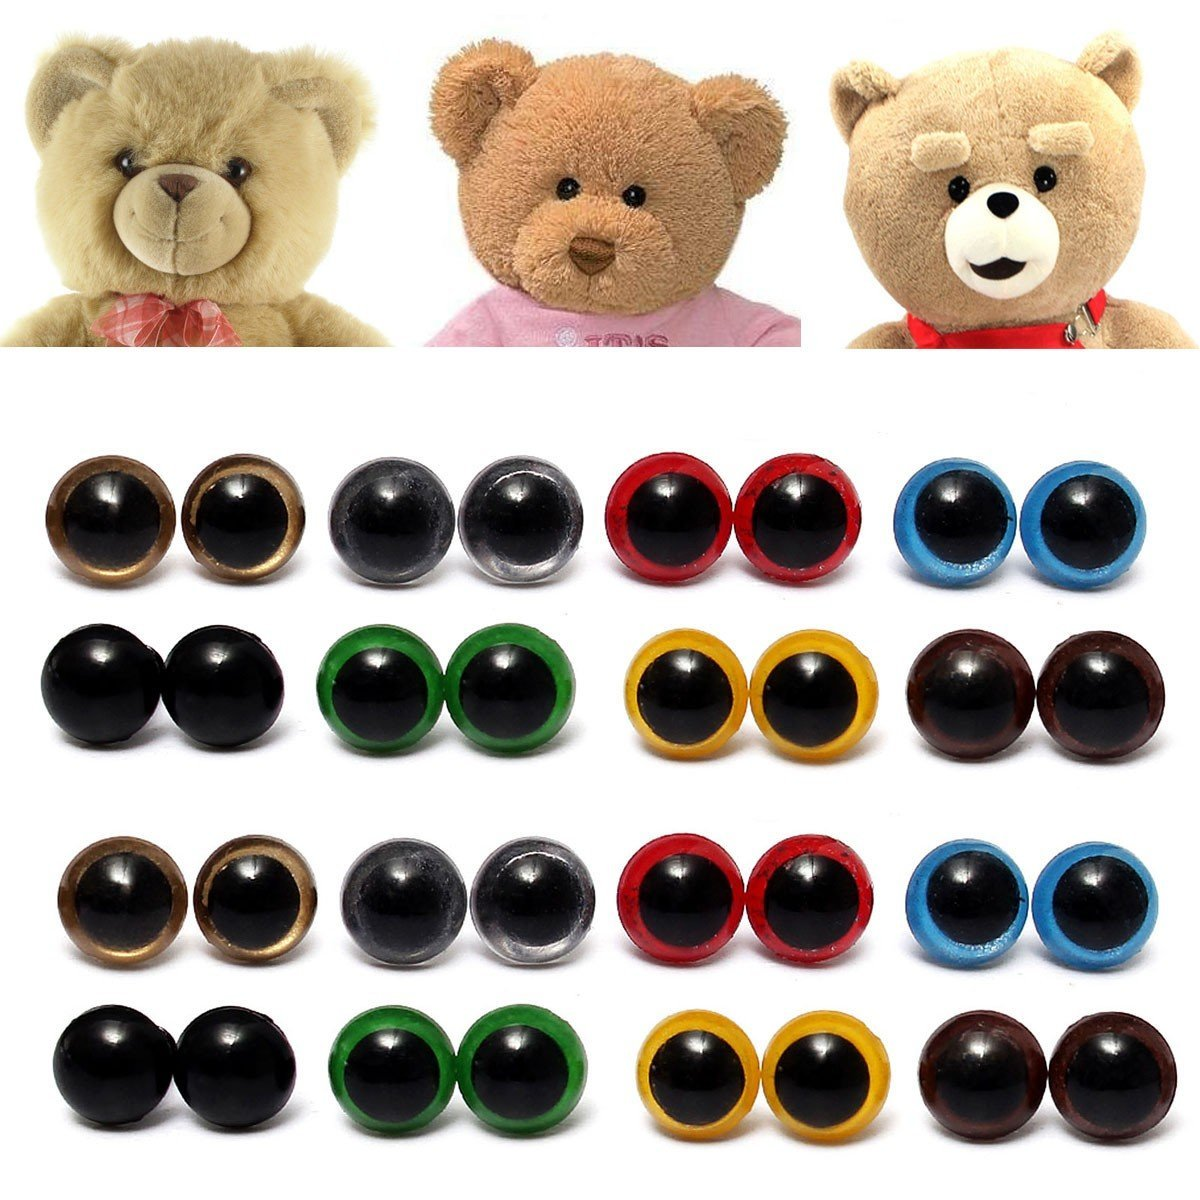 80pcs 8 Mixed Color Plastic Safety Eyes Washers for Animal Toy Teddy Bea ITY